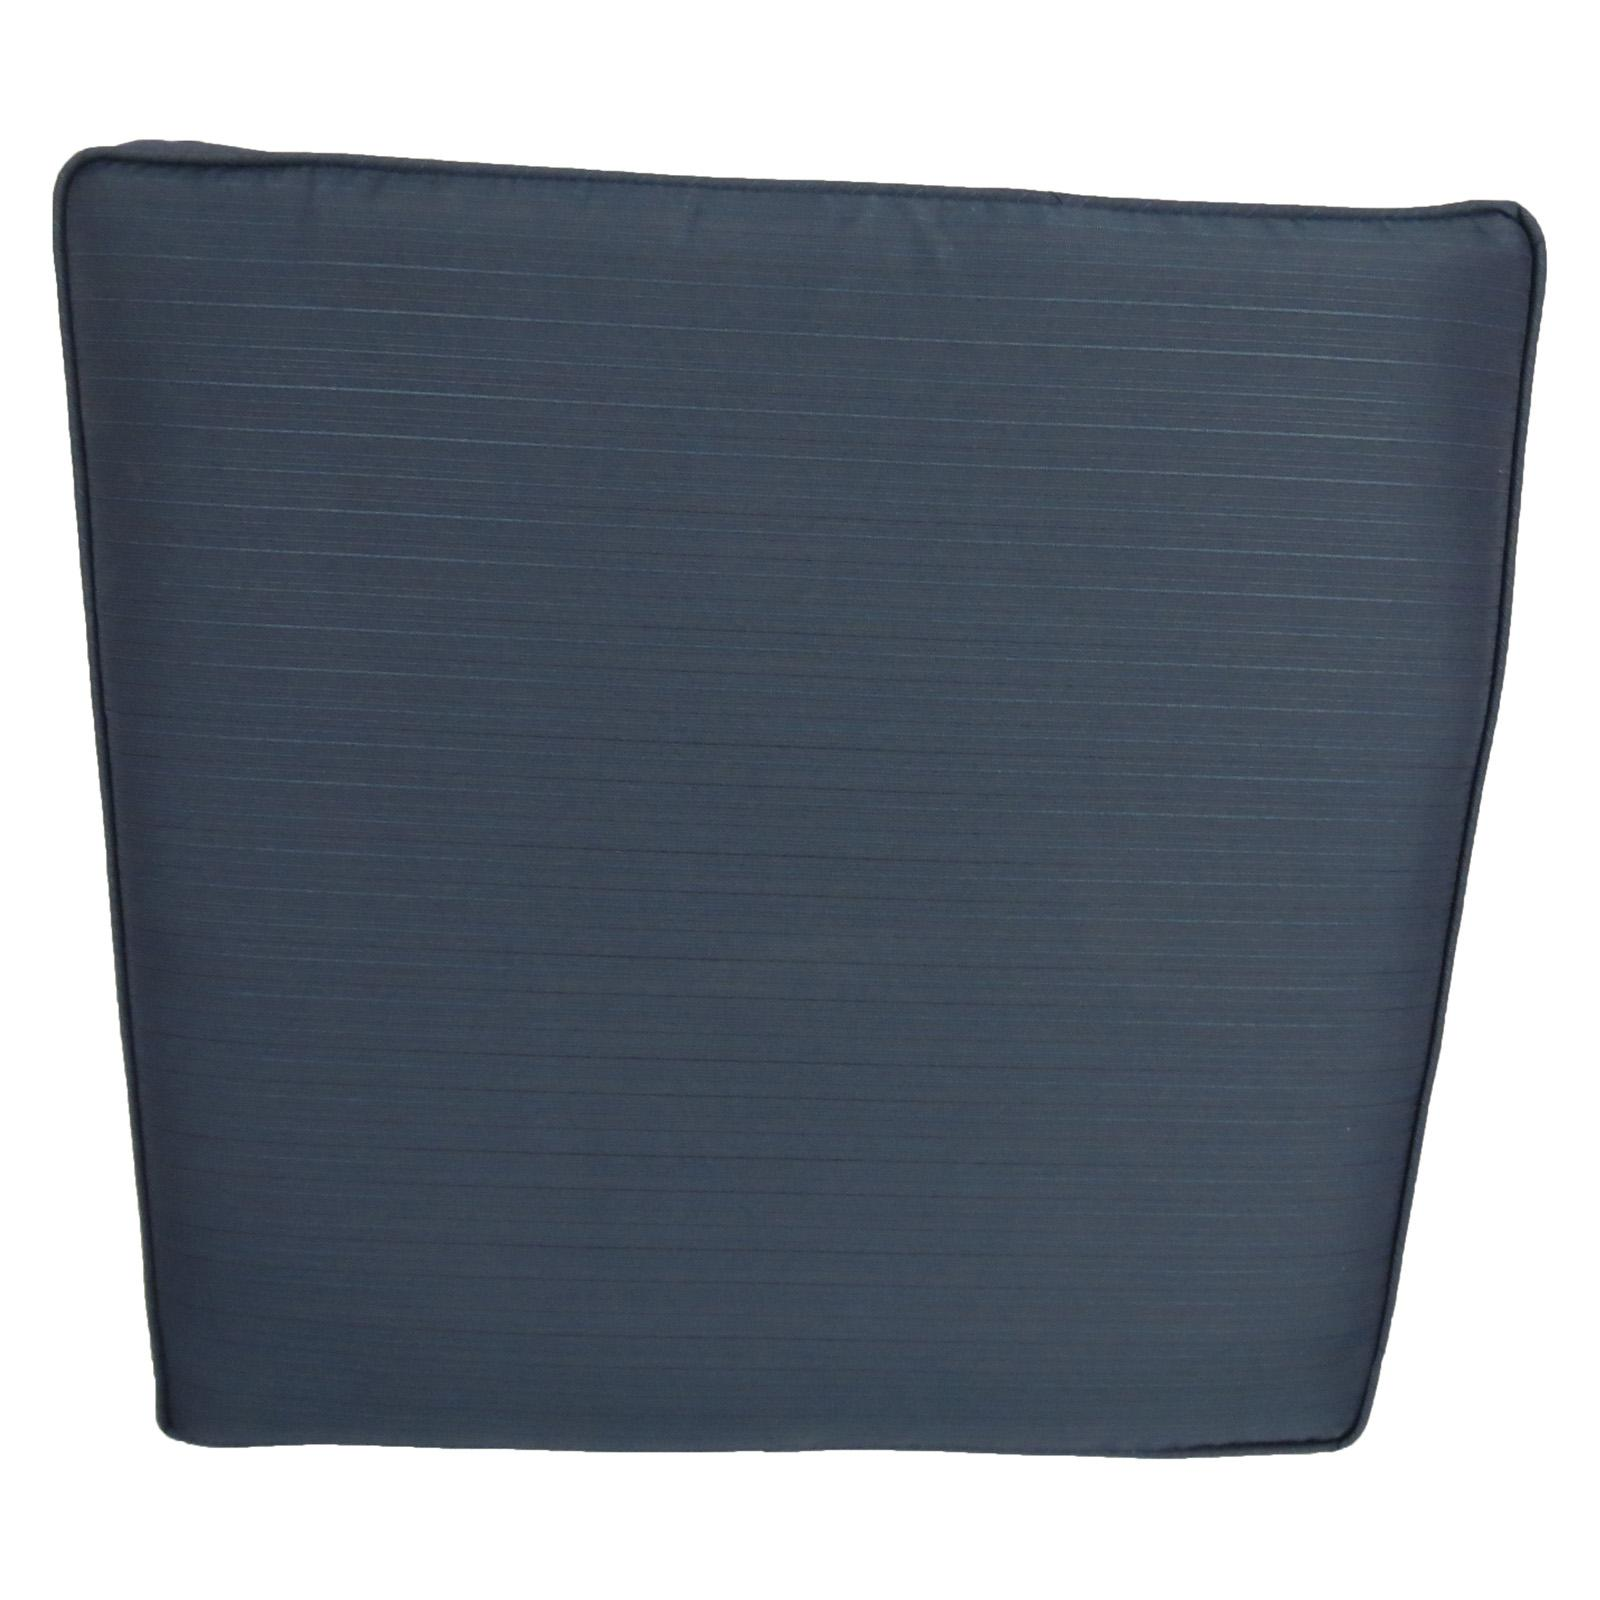 Belham Living Marcella Replacement Seat Cushion Navy - SH-SEATCUSH/RNV